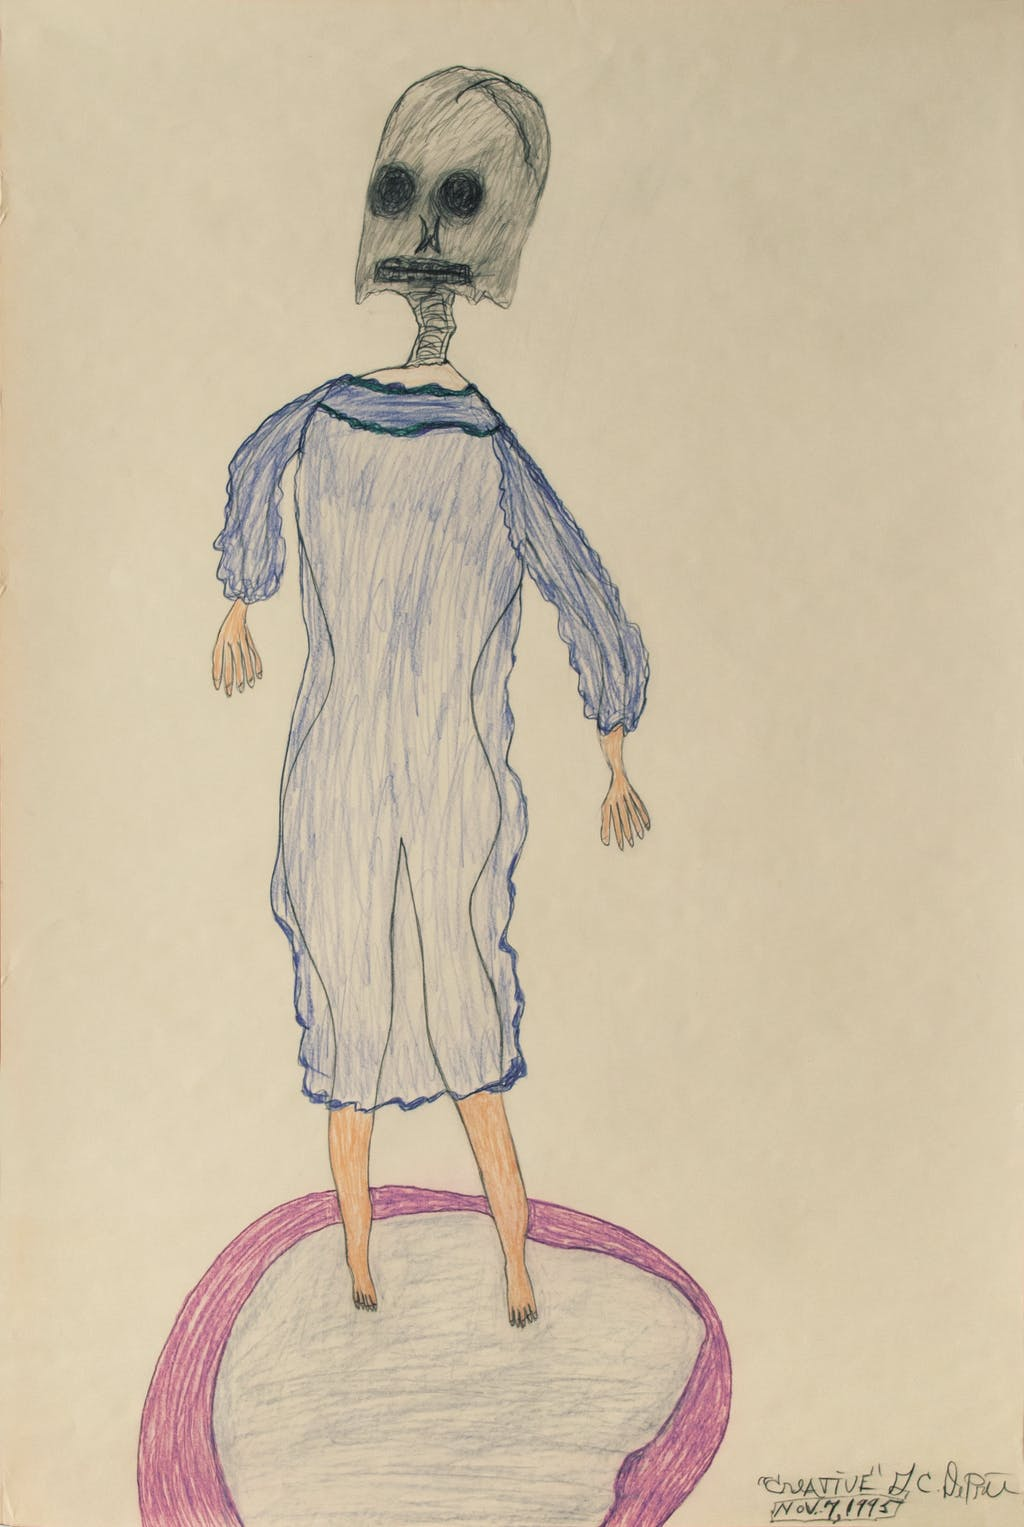 G.C. Deprie, *untitled*, 1995. coloured pencil and graphite on paper, 35.83 x 24.02 in - © christian berst — art brut